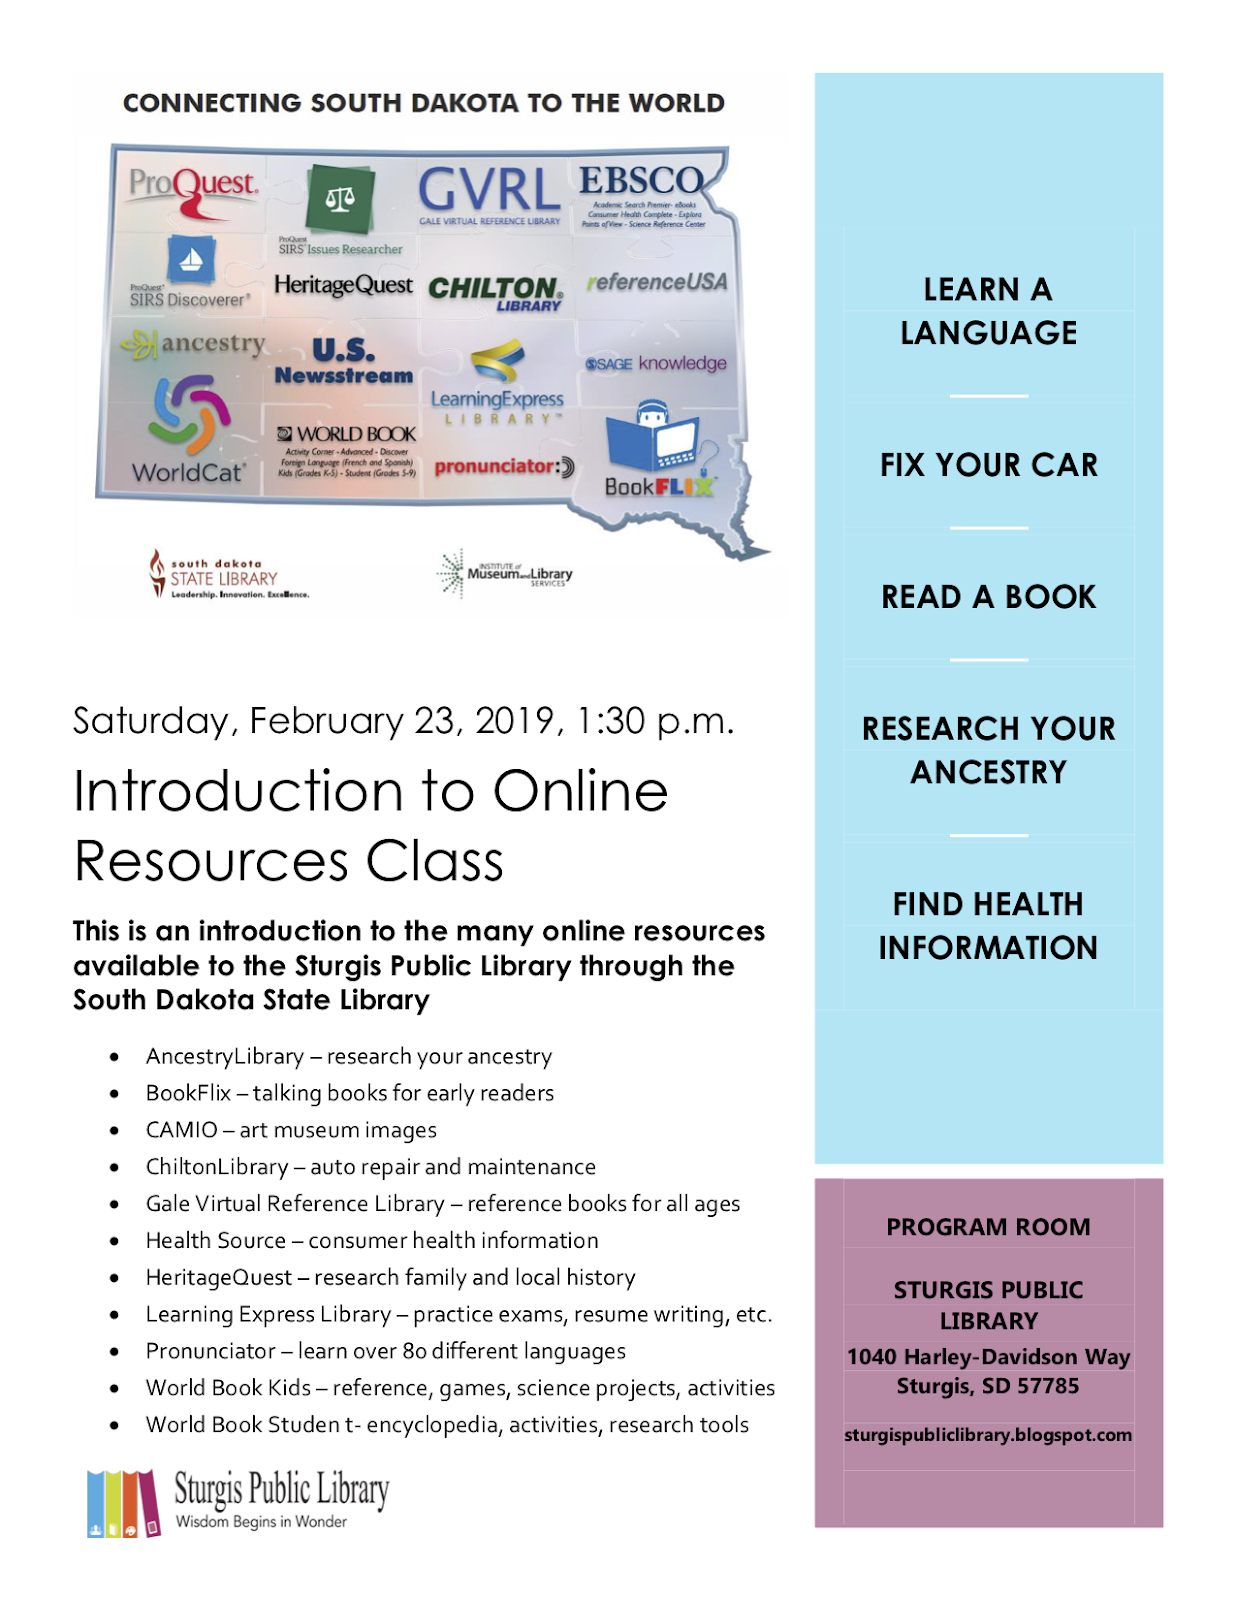 Sturgis Public Library: Introduction to Online Resources Class